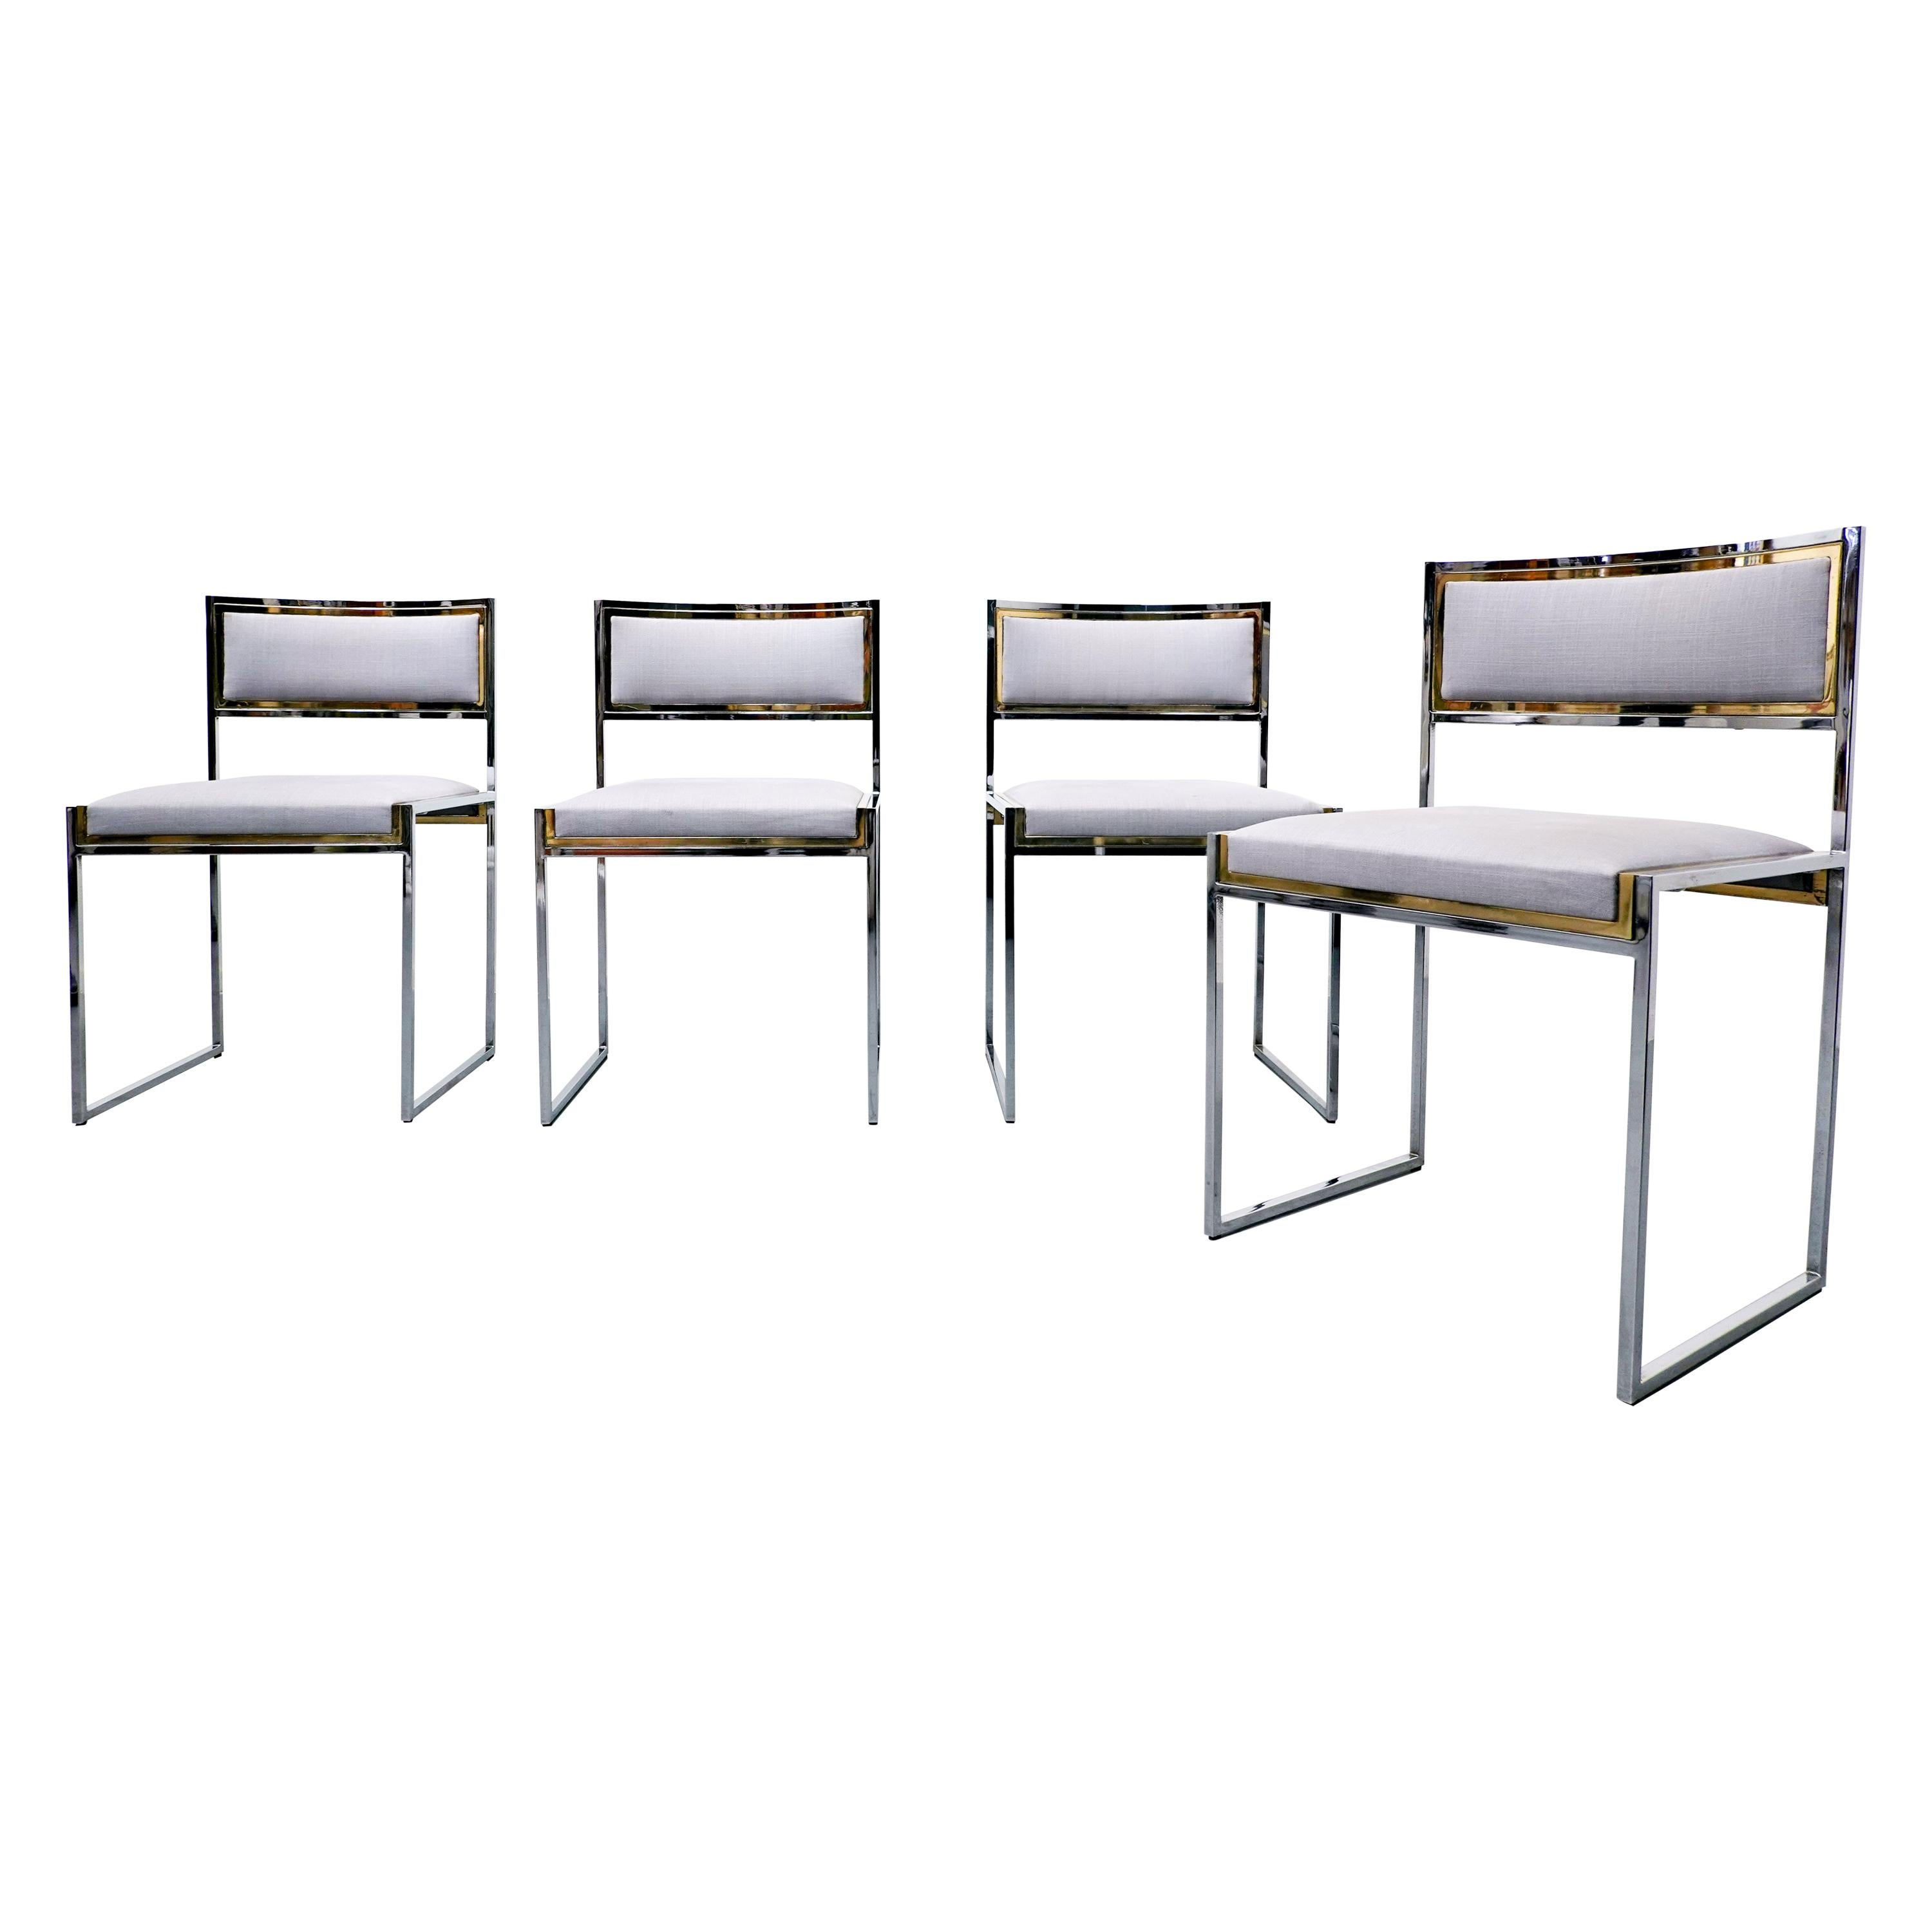 Set of 4 Italian Mid Century Chairs Willy Rizzo - 1970s.